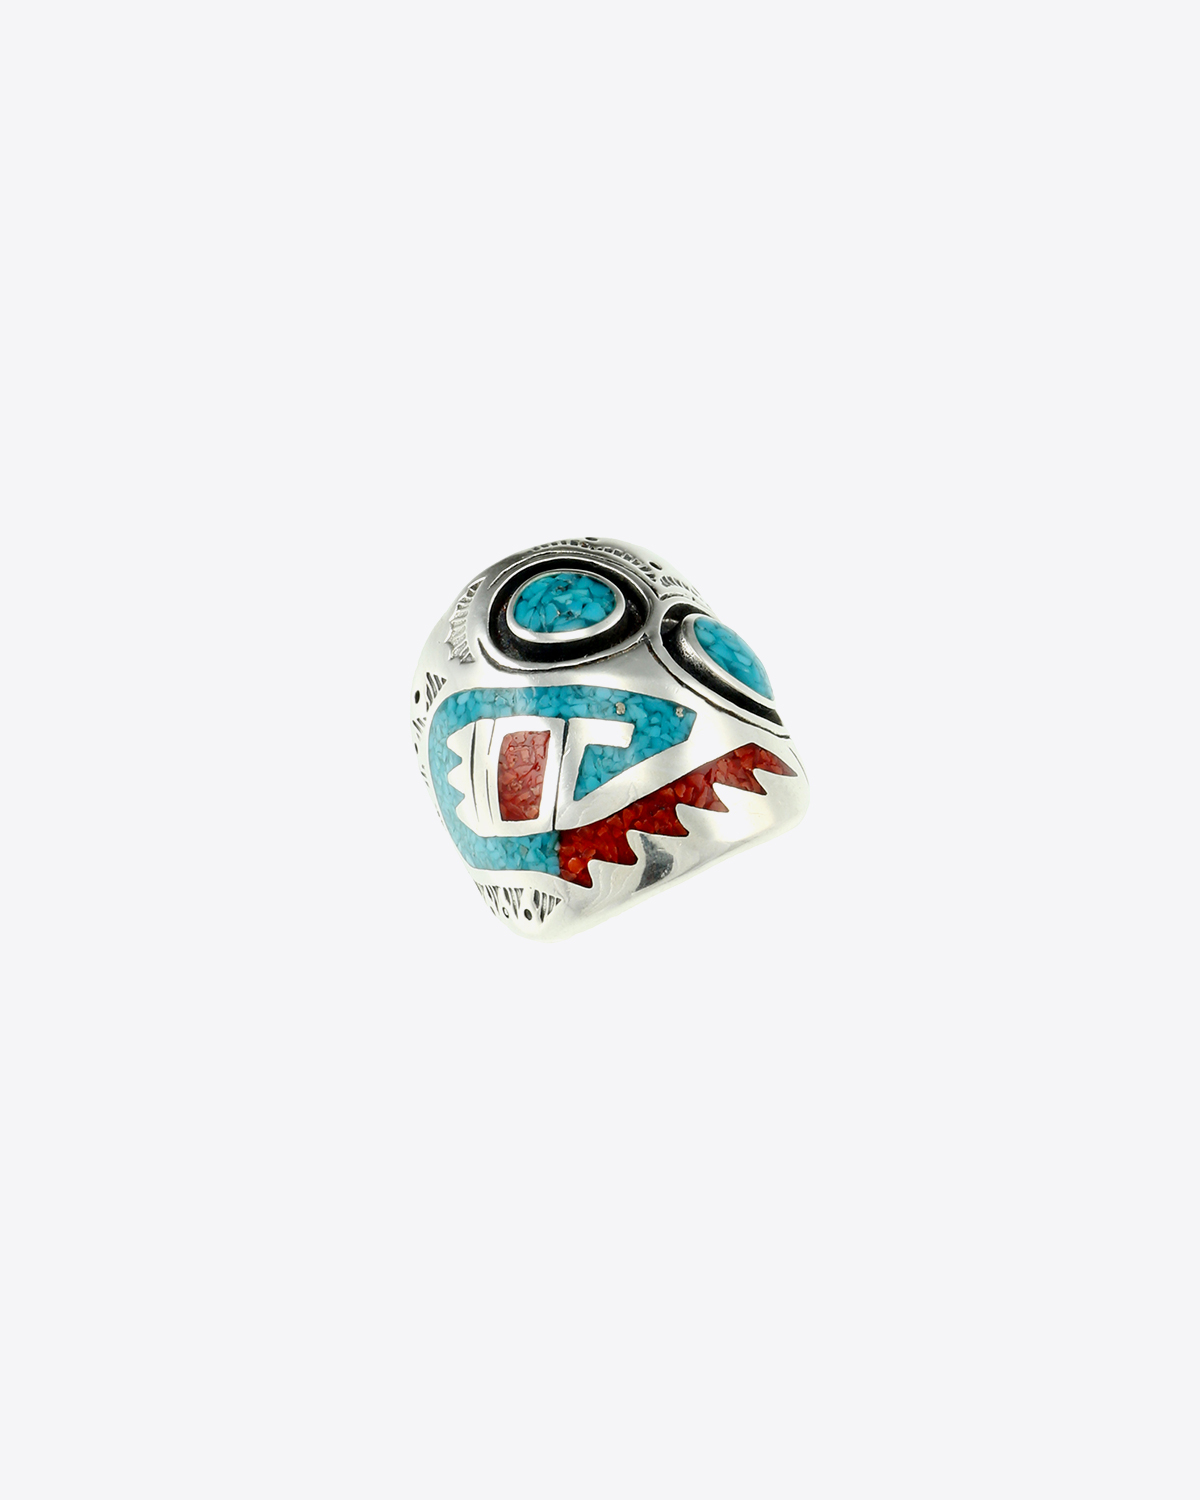 Harpo Bague Navajo Inlay Masque Incrustation Corail & Turquoise R184